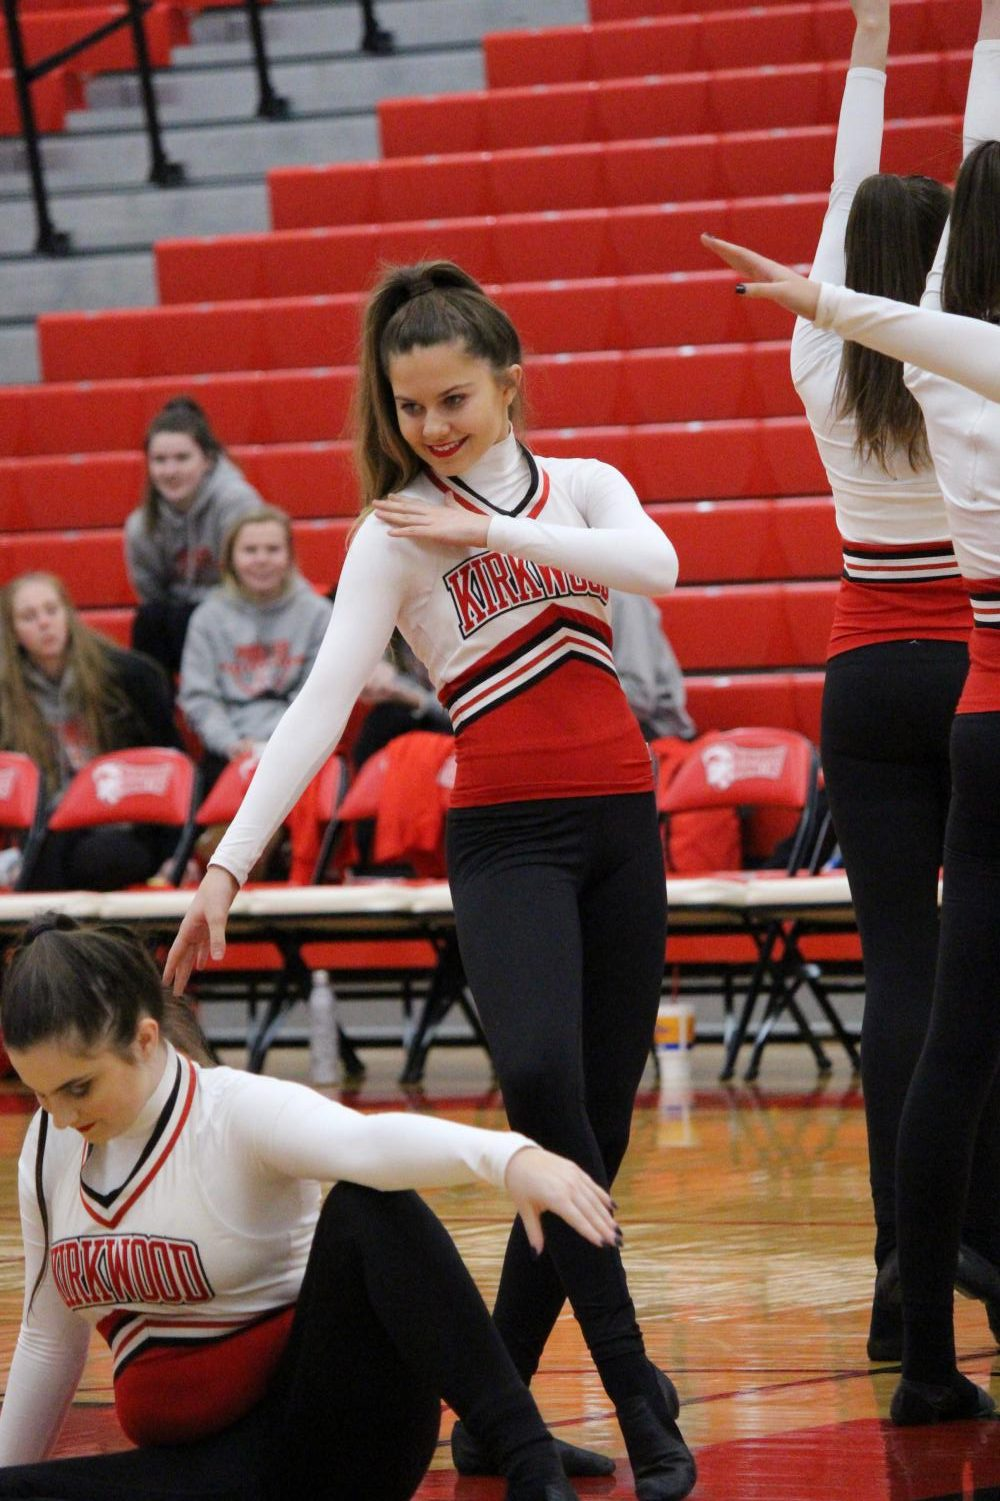 During+the+pommies+halftime+show+at+the+girls+JV+basketball+game+Maddie+Schmidt%2C+freshman%2C+strikes+a+pose+Jan.+3.